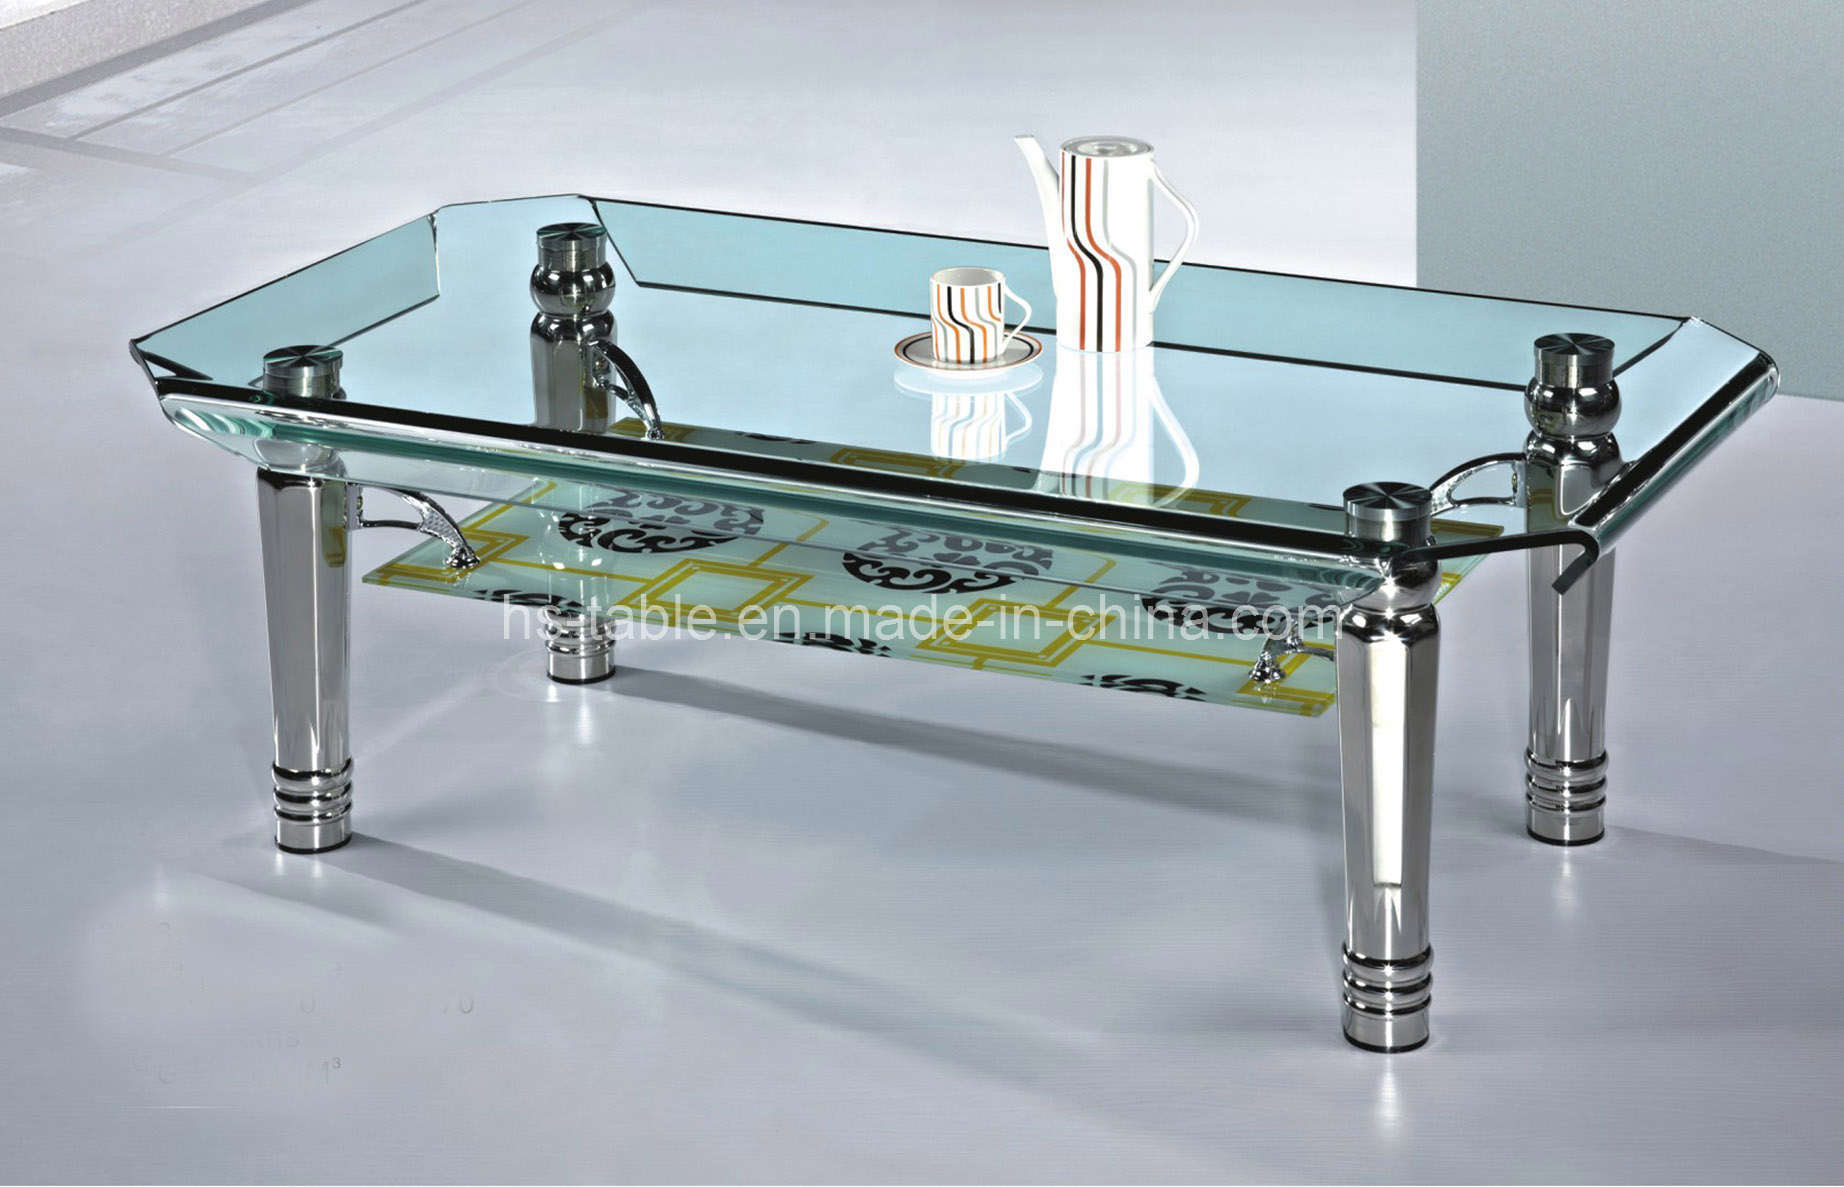 China bend glass top bend glass coffee table 2272 china glass coffee table glass tea table Coffee tables glass top